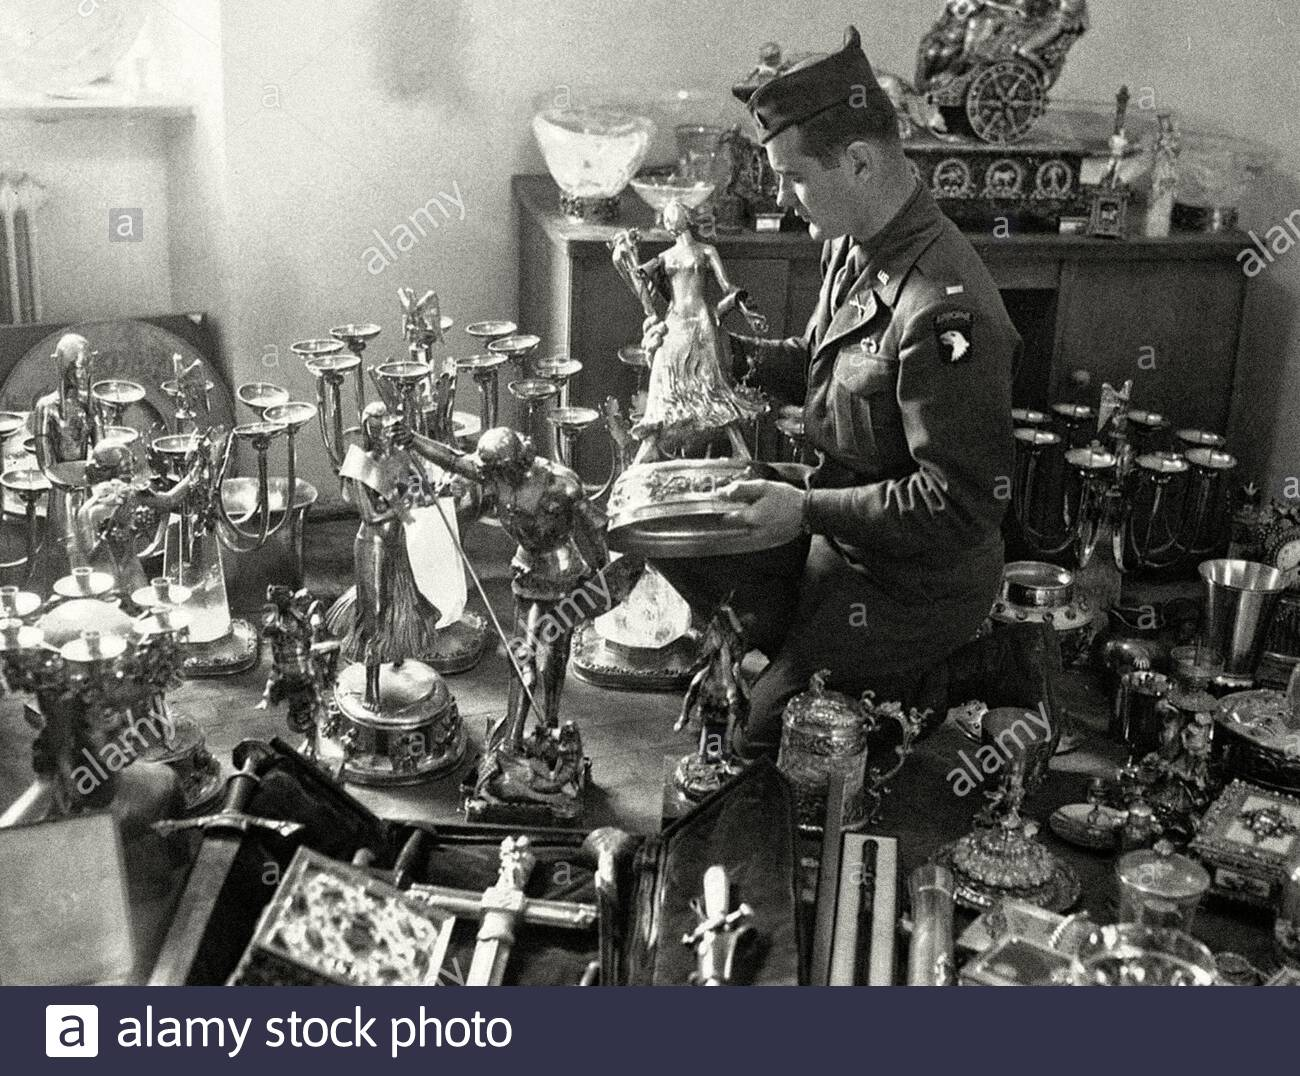 A U.S. soldier examines a solid gold statue, part of Hermann Goering's private loot, found by the 7th U.S. Army in a mountainside cave near Schonau am Stock Photo